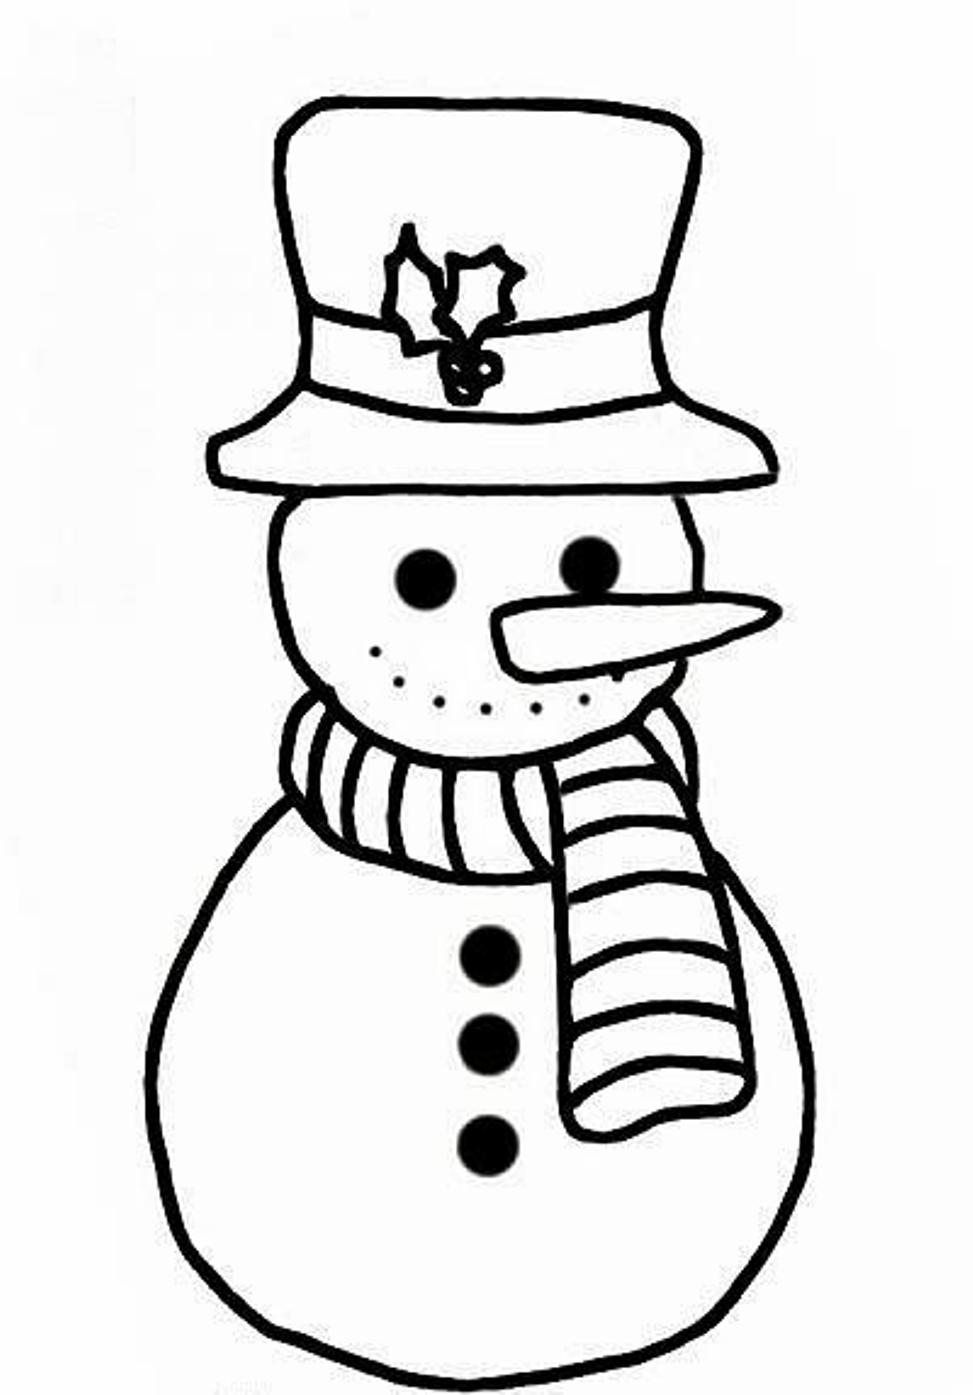 snowmancoloring sheets snowman coloring pages to download and print for free sheets snowmancoloring